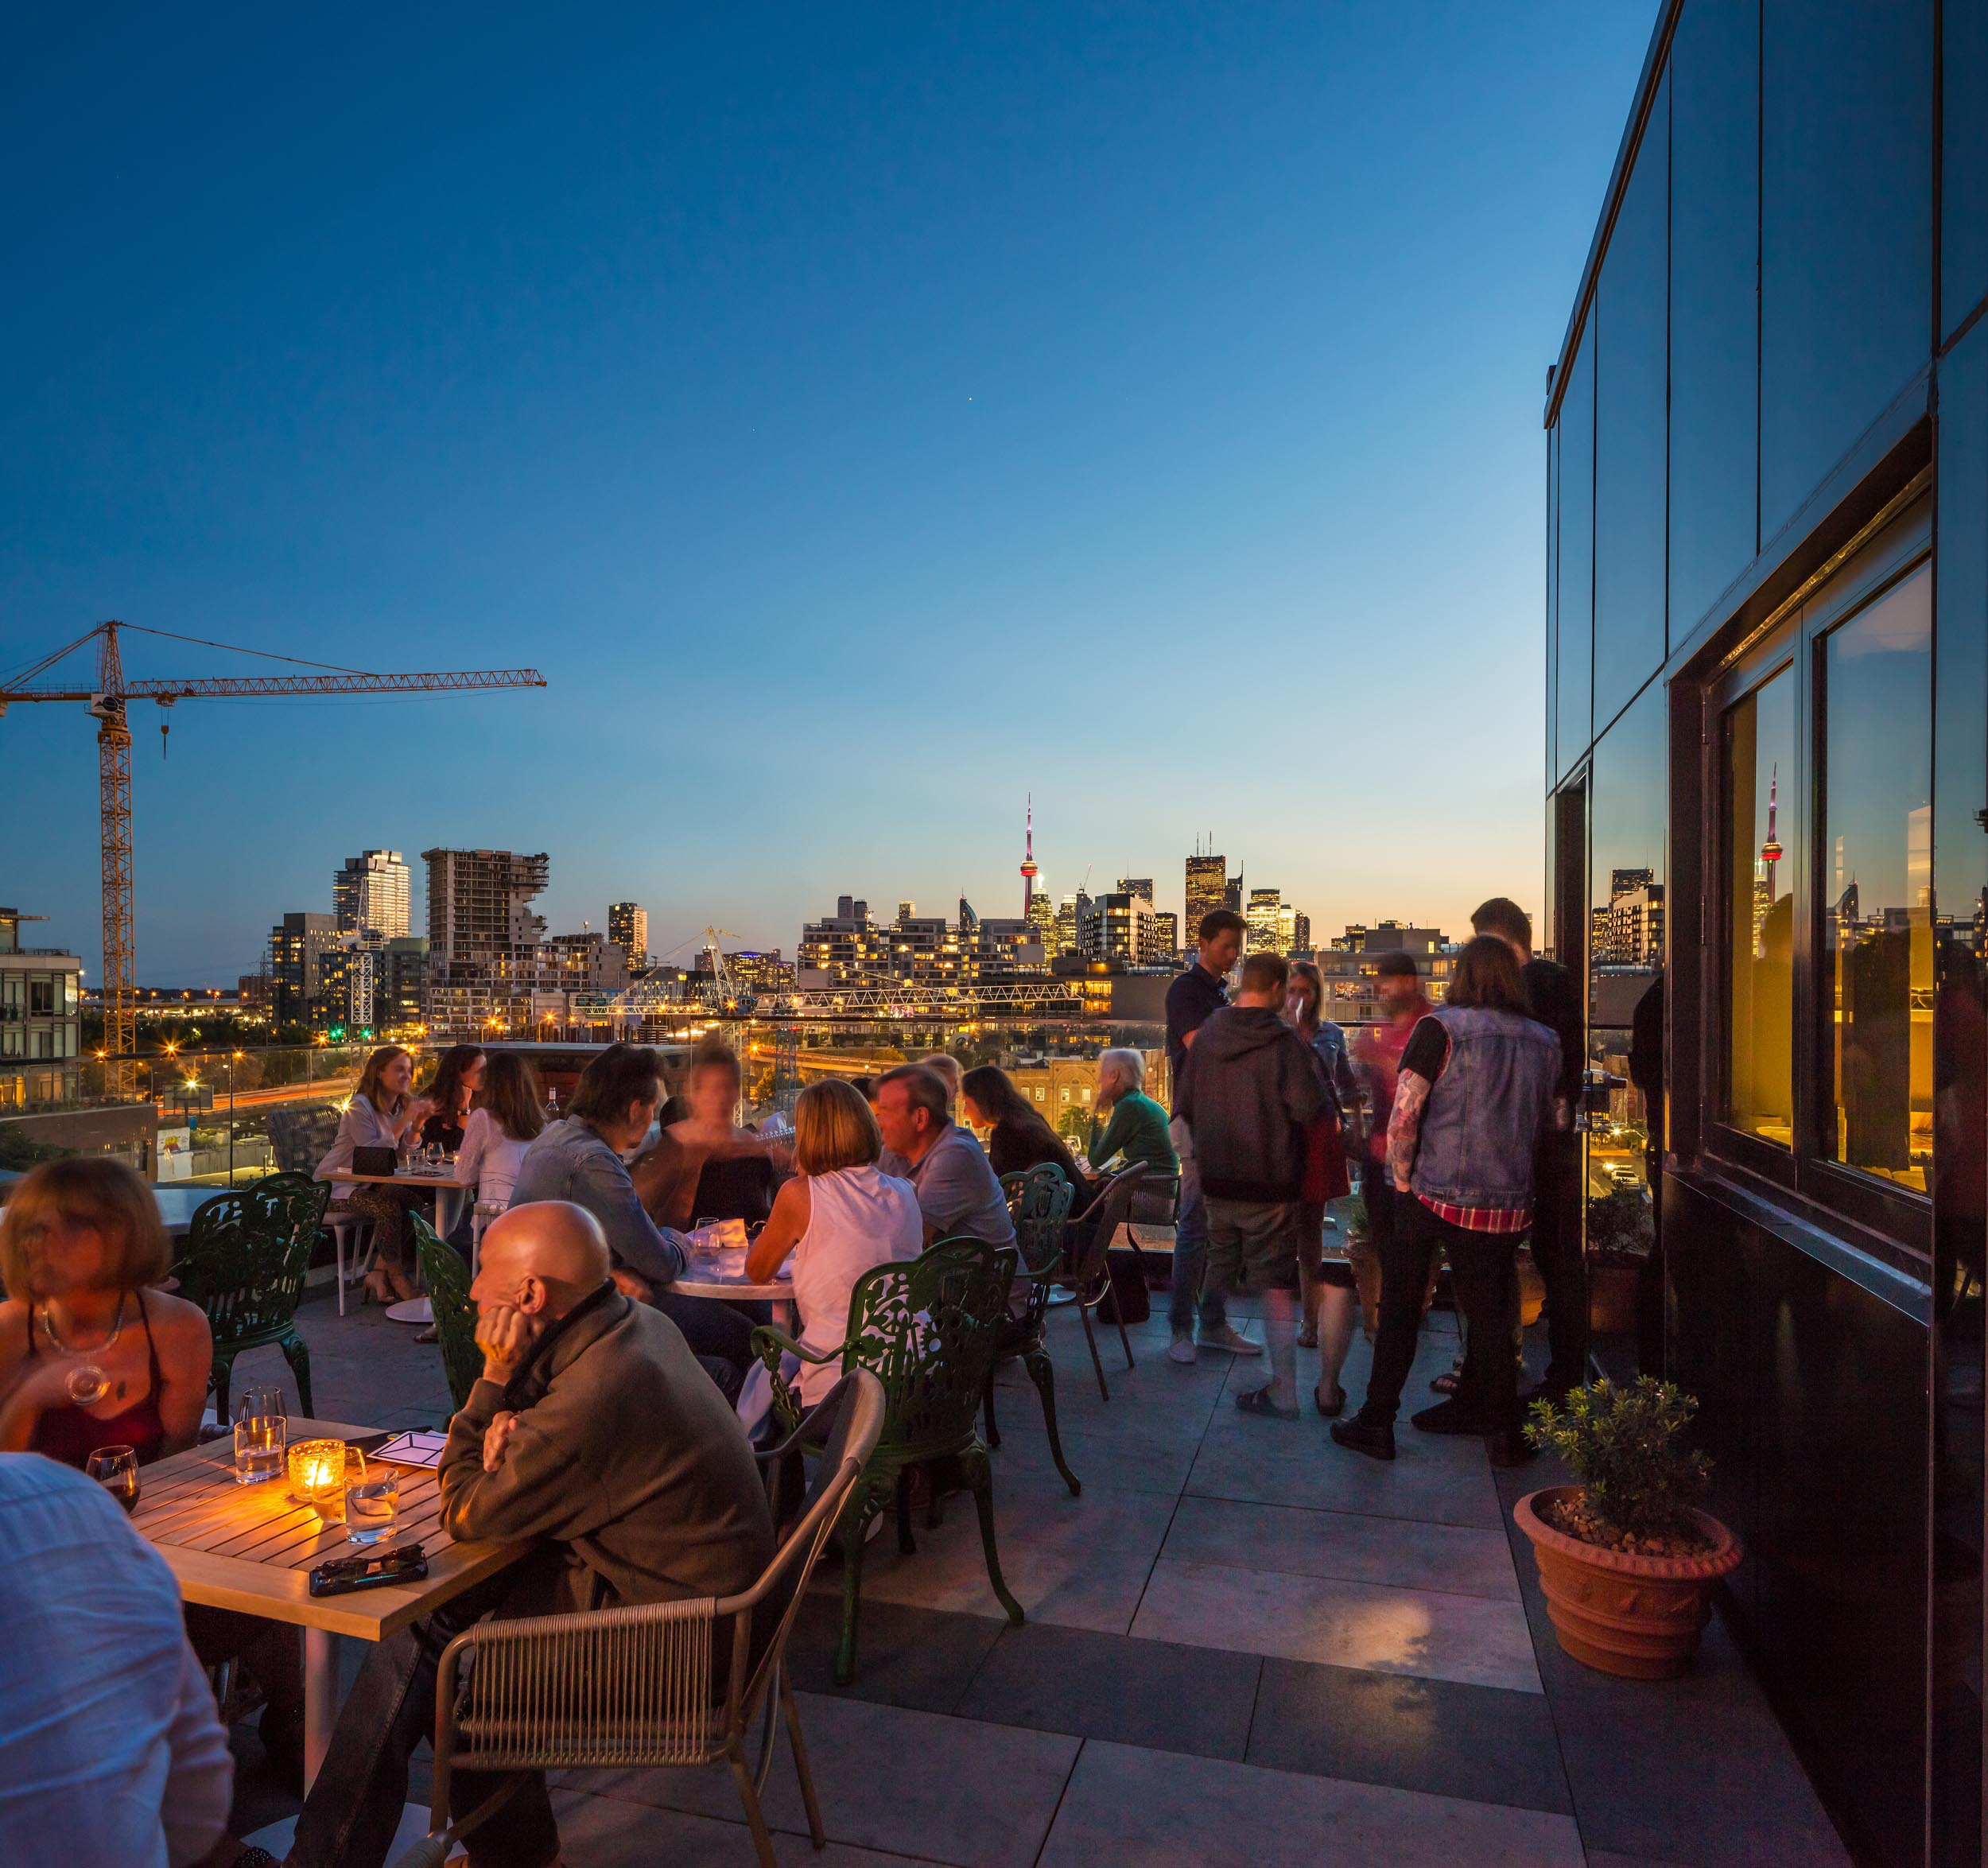 Toronto Skyline View from Broadview Hotel Rooftop Patio Architectural Photography by Worker Bee Supply